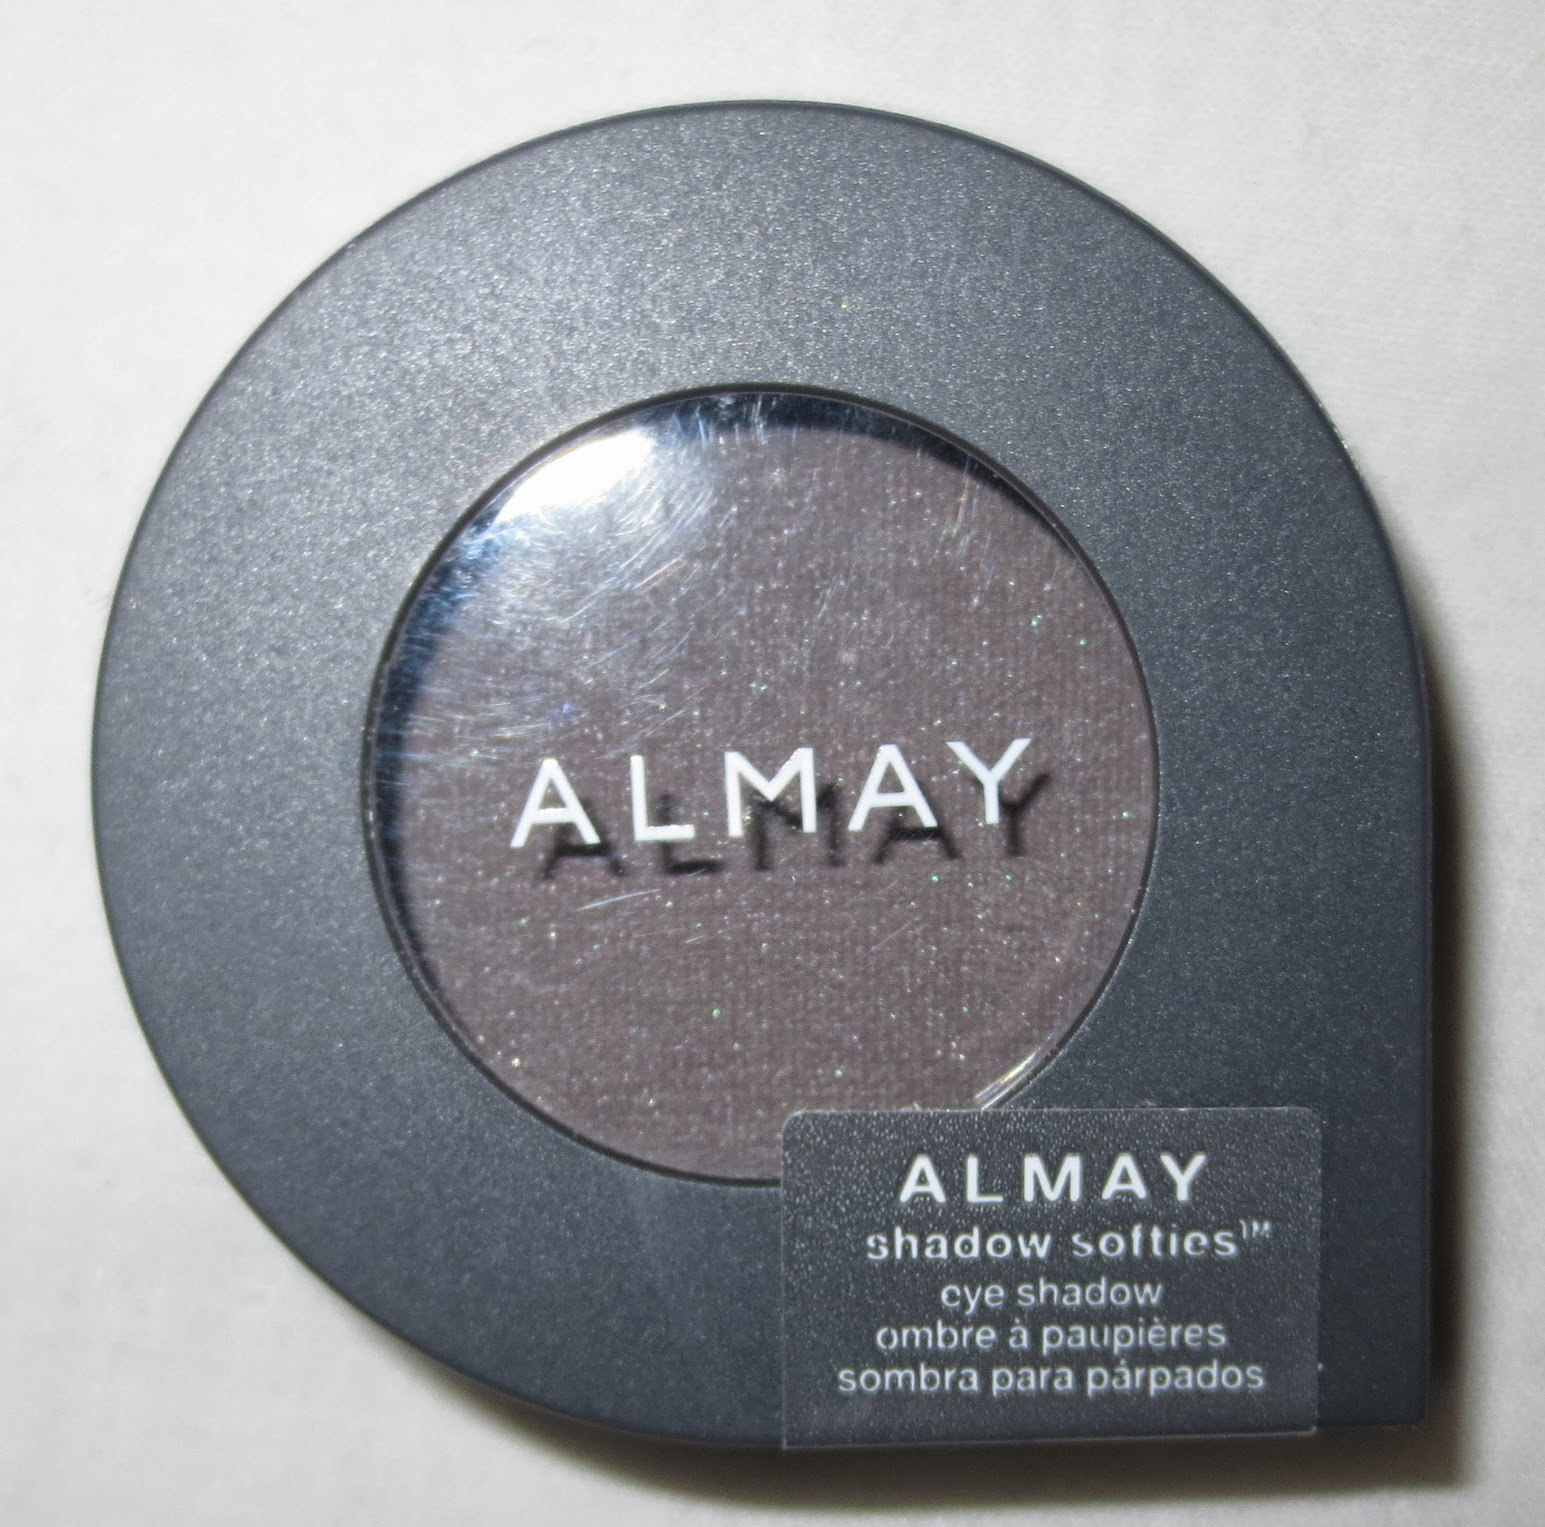 Almay Shadow Softies in Smoke